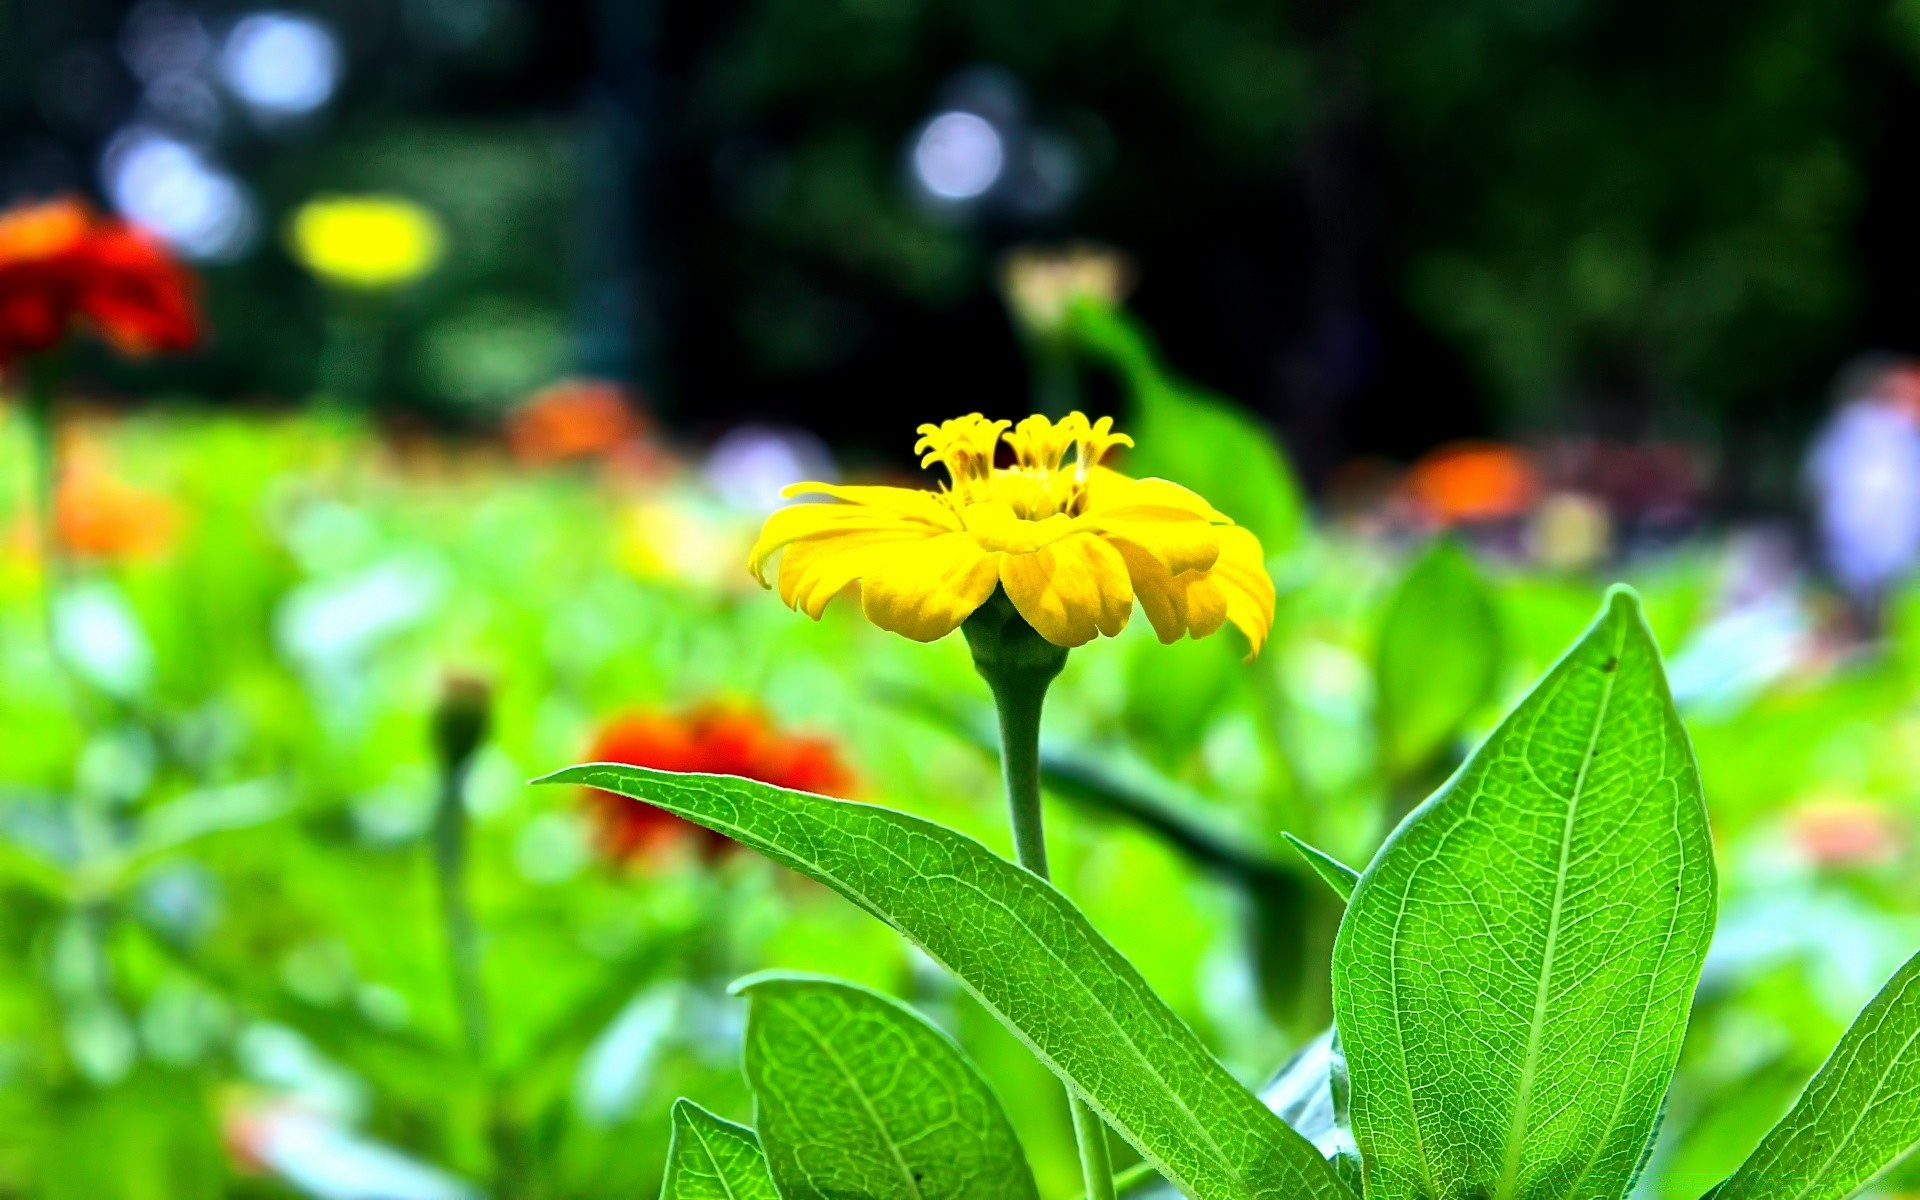 flowers nature leaf summer flora garden flower growth outdoors environment grass fair weather bright color close-up field